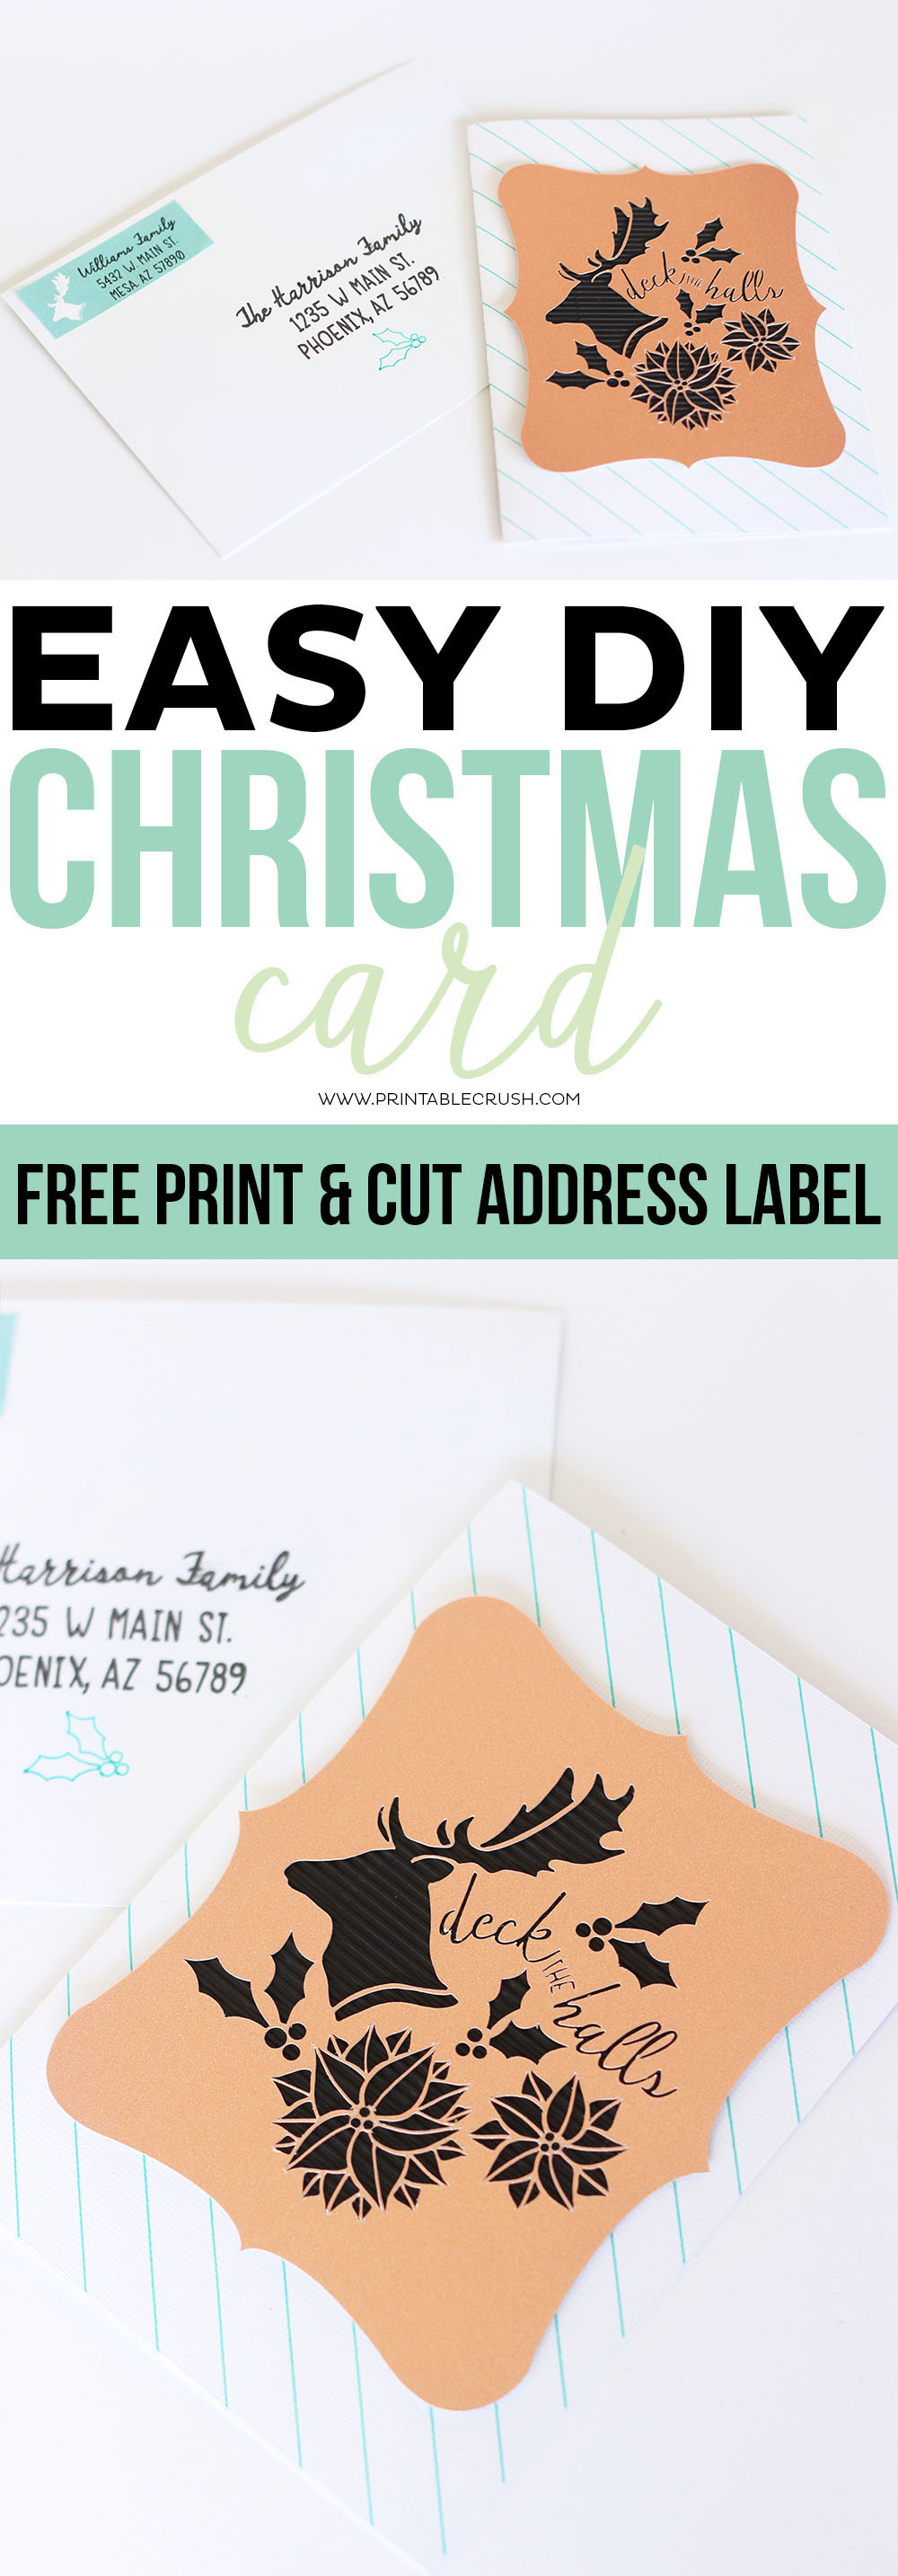 this easy diy christmas card tutorial also comes with a free printable address label you